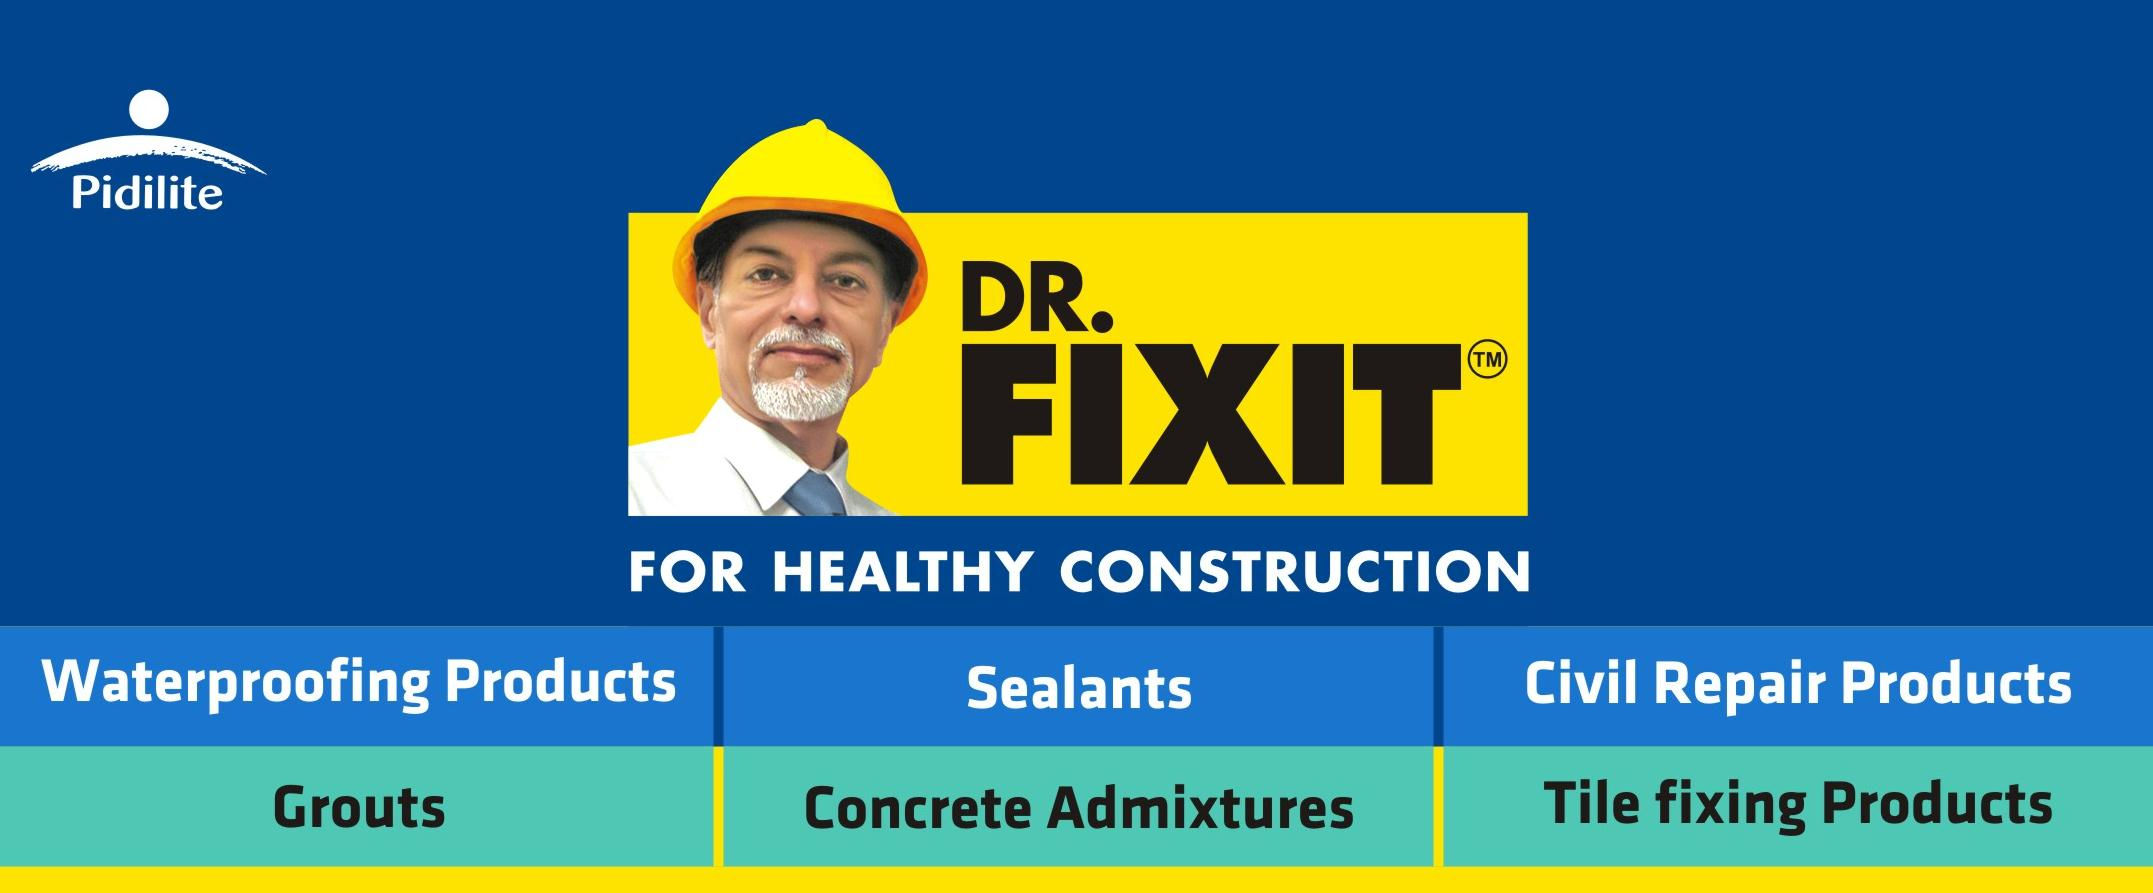 Dr. Fixit Toll Free Customer Care Number & Helpline Phone Support.